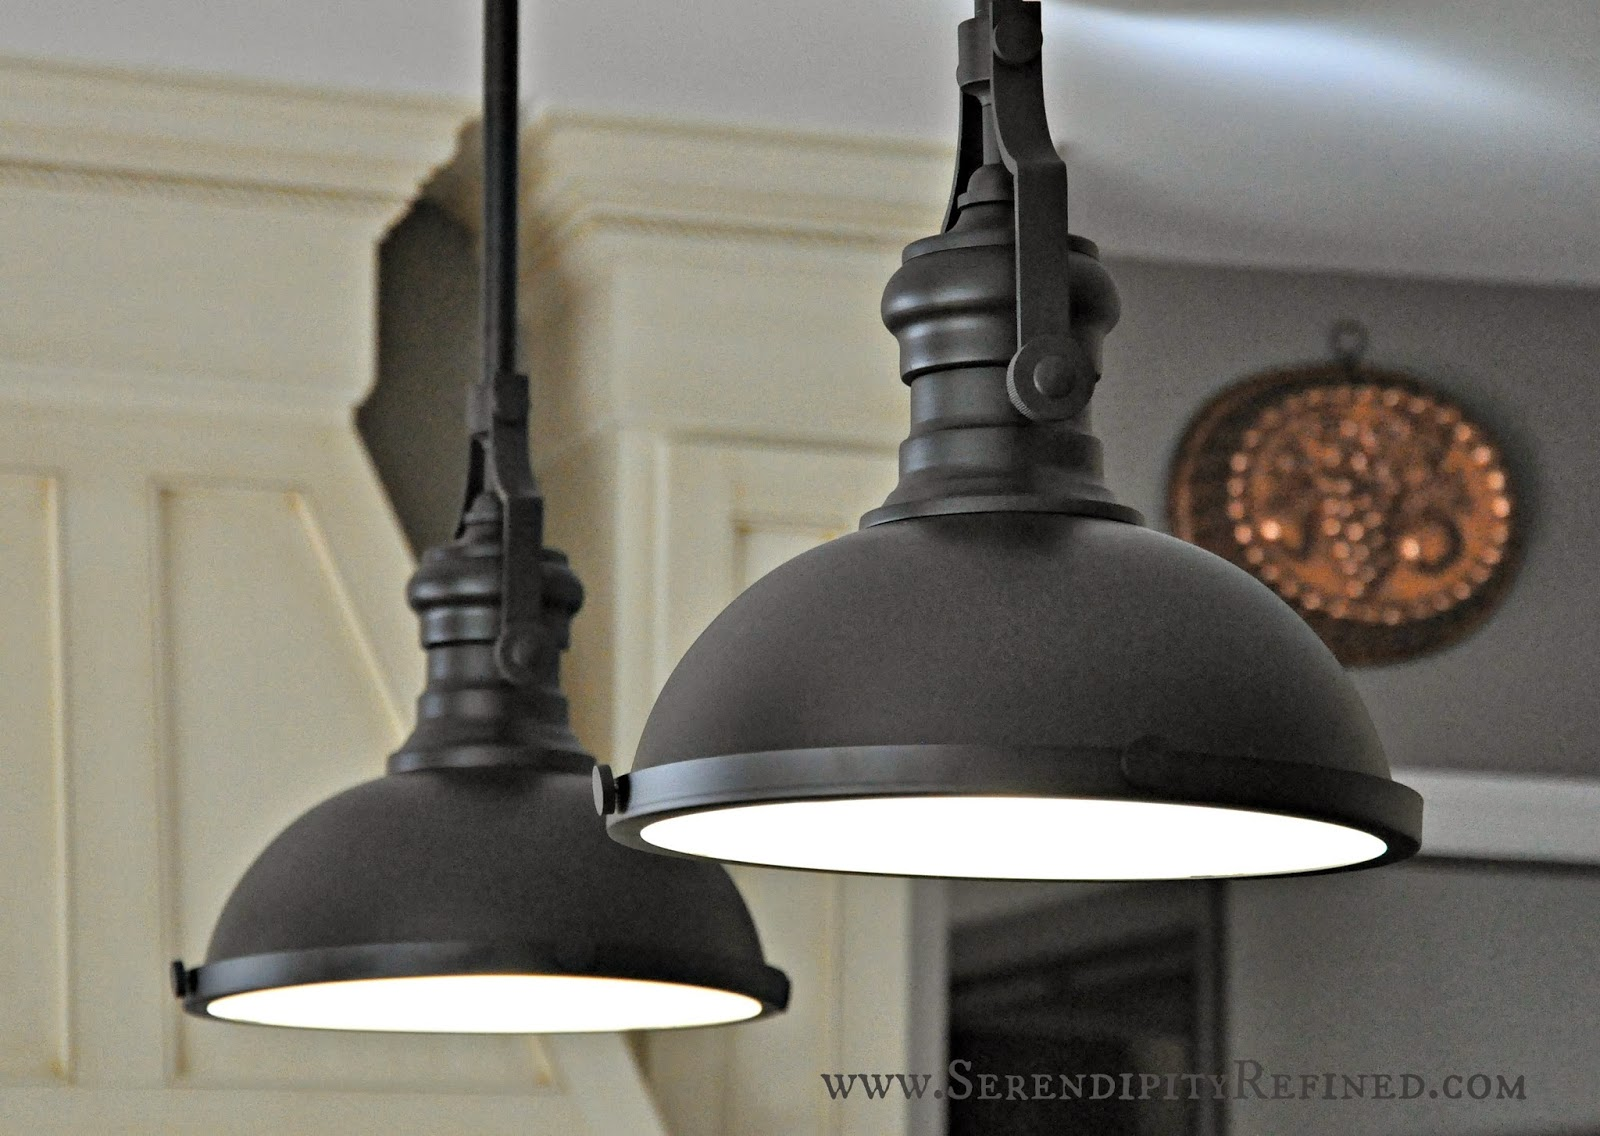 Serendipity Refined Blog French Farm House Kitchen Progress Paint and Light